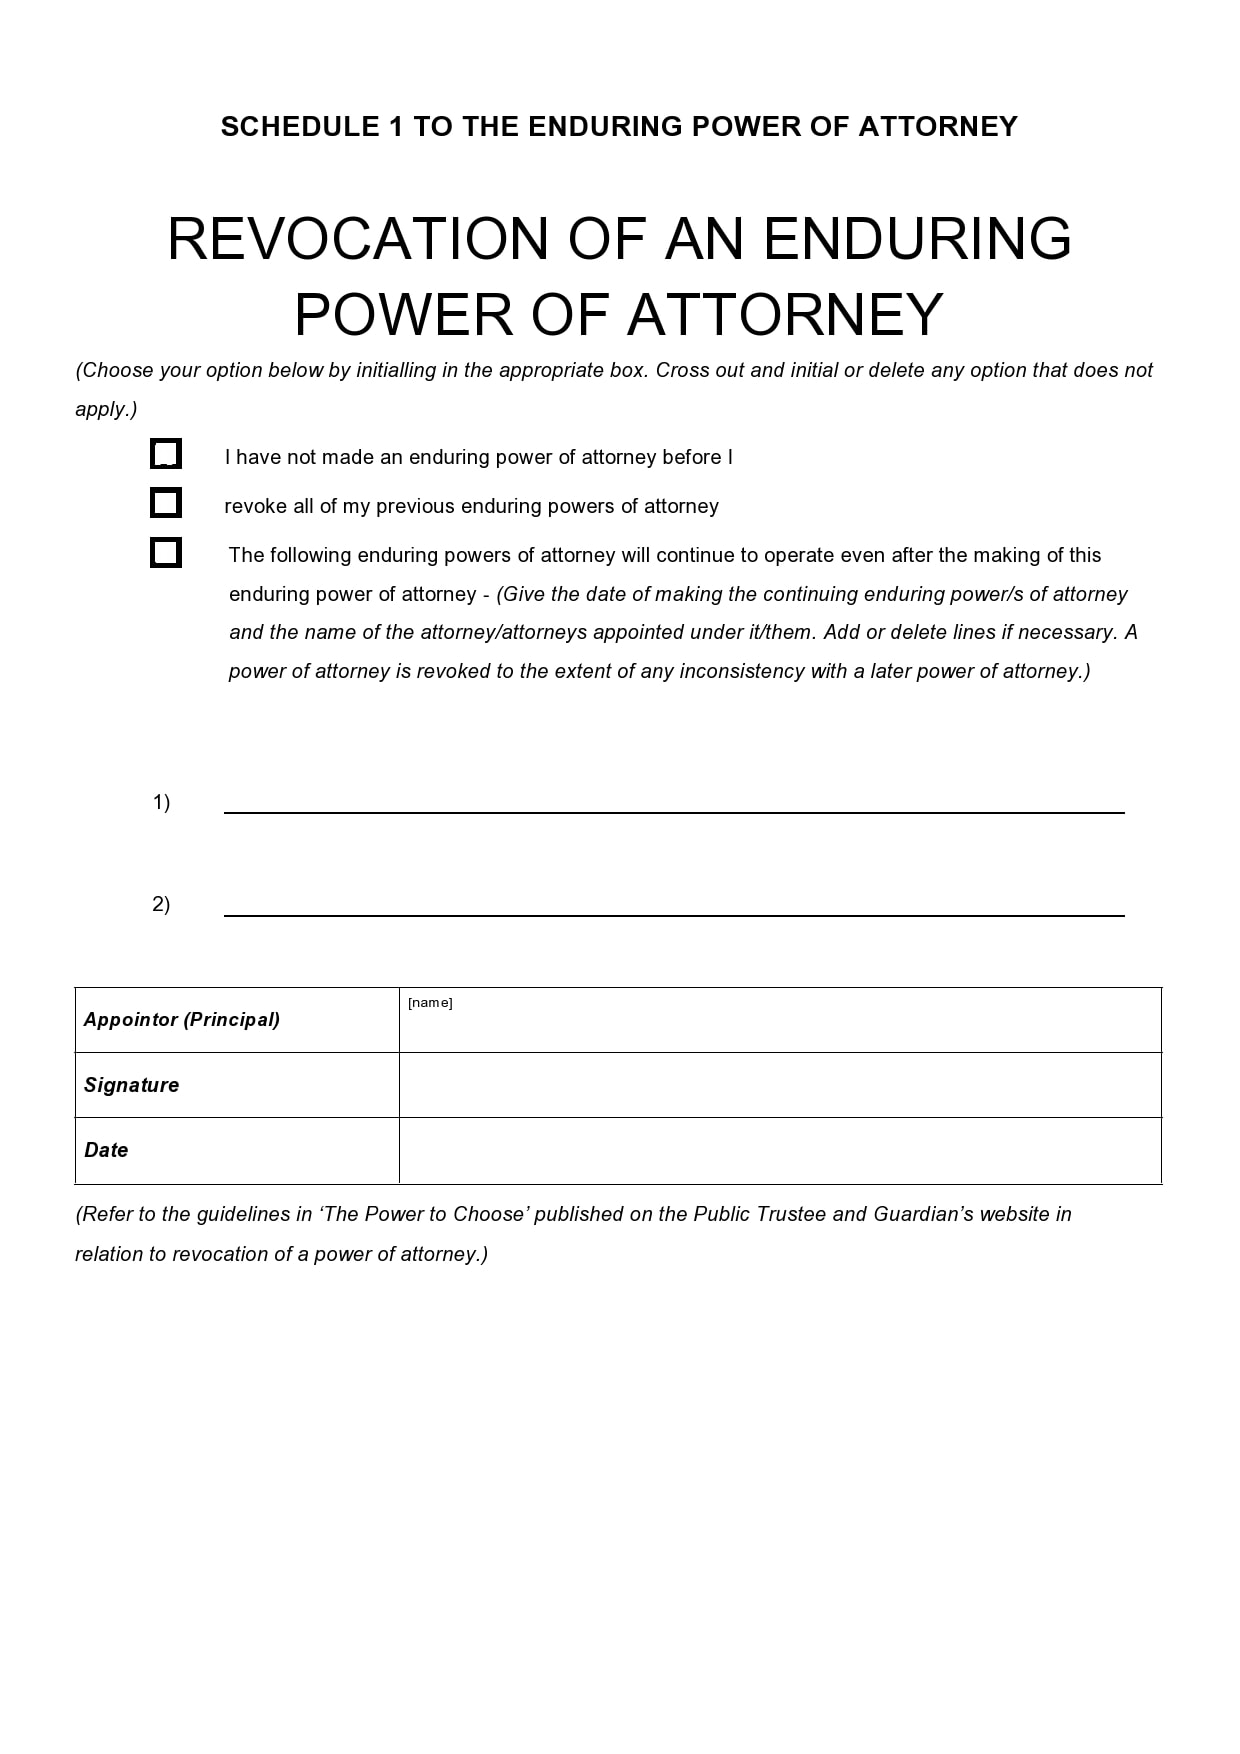 power of attorney revocation form 27